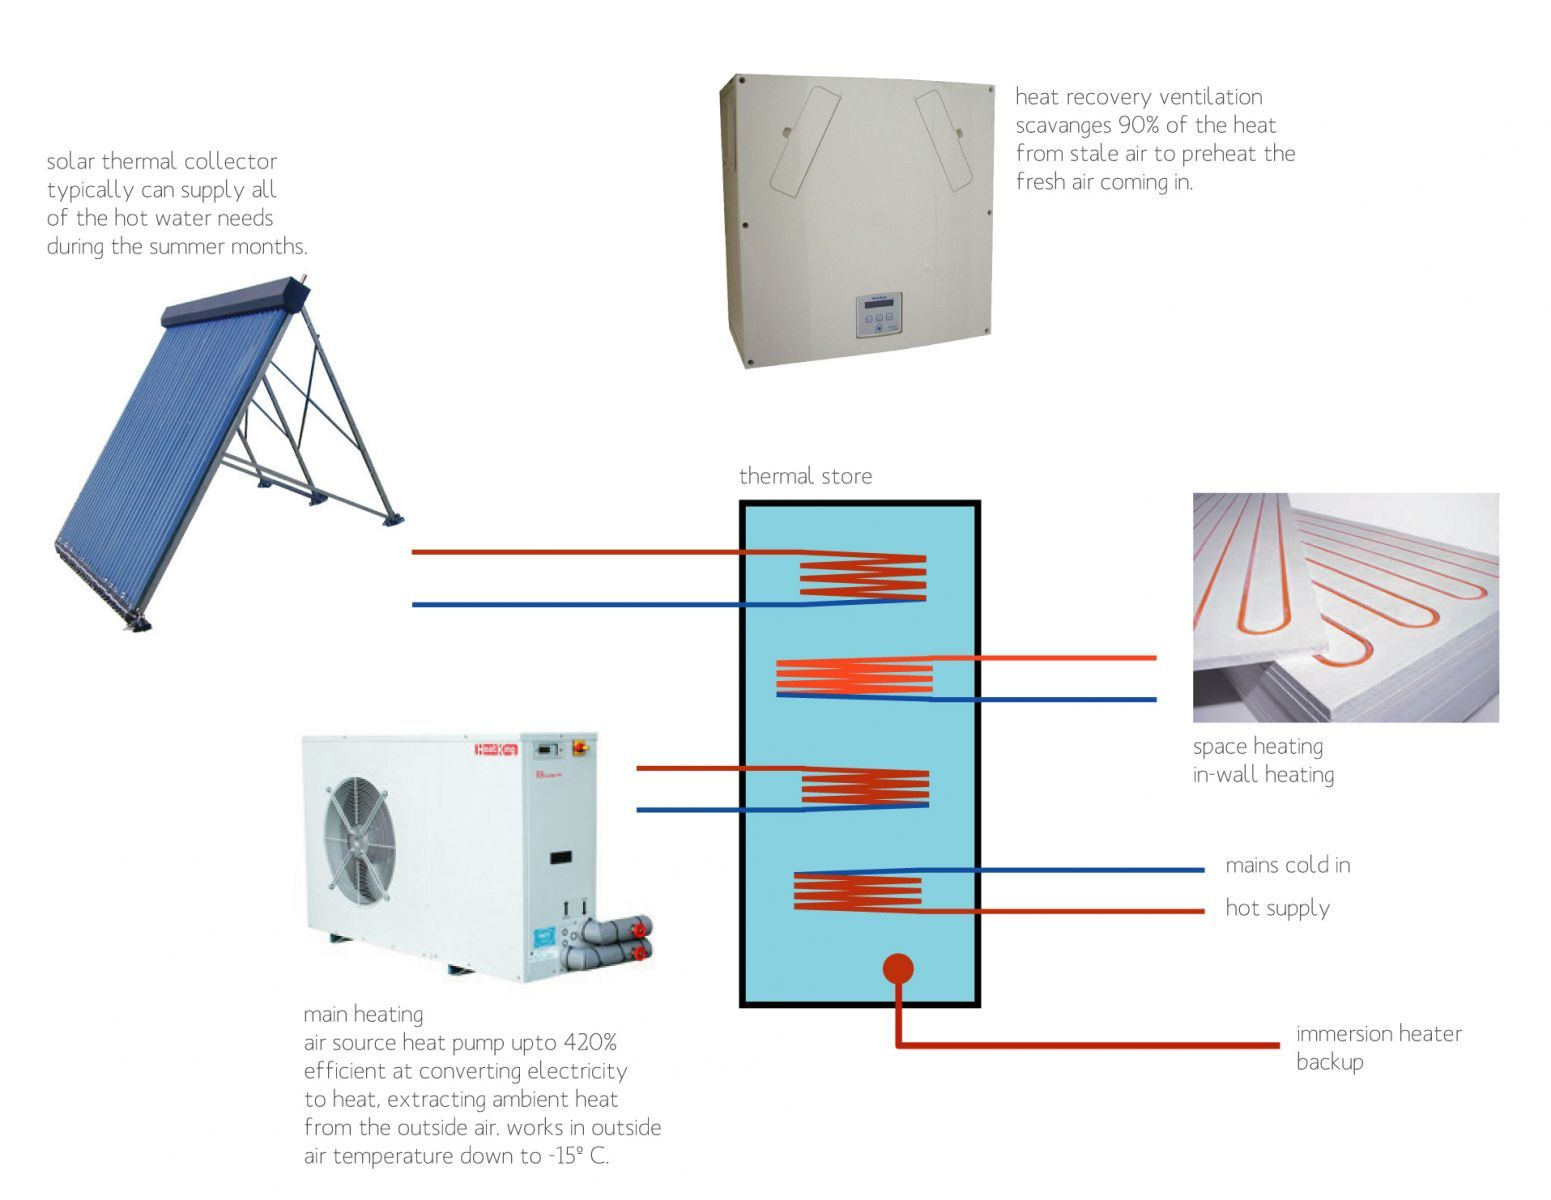 medium resolution of eco heating system diagram jpg 1551 1200